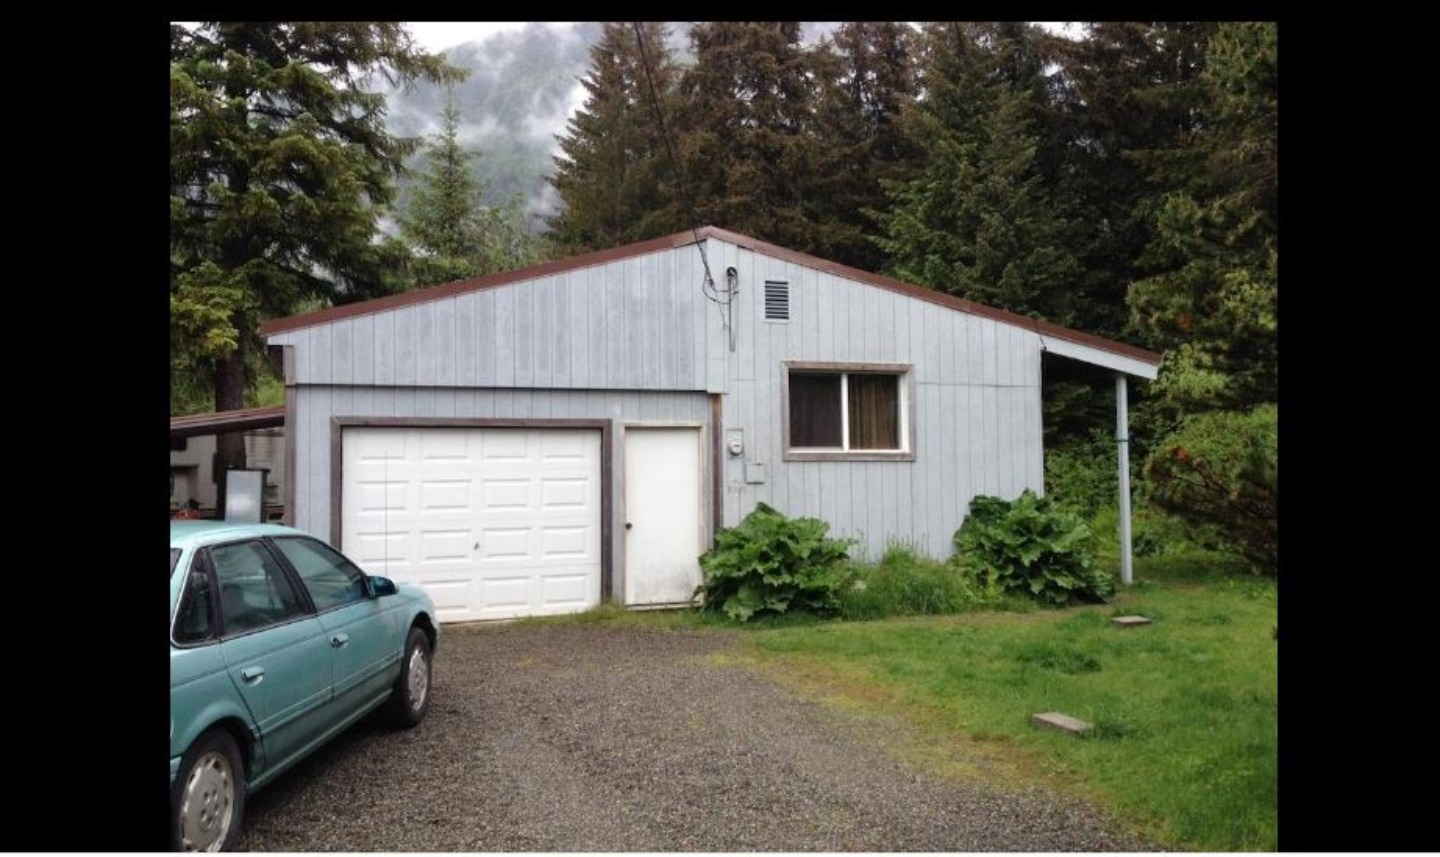 A car parked in front of a house at Juneau Guest House.